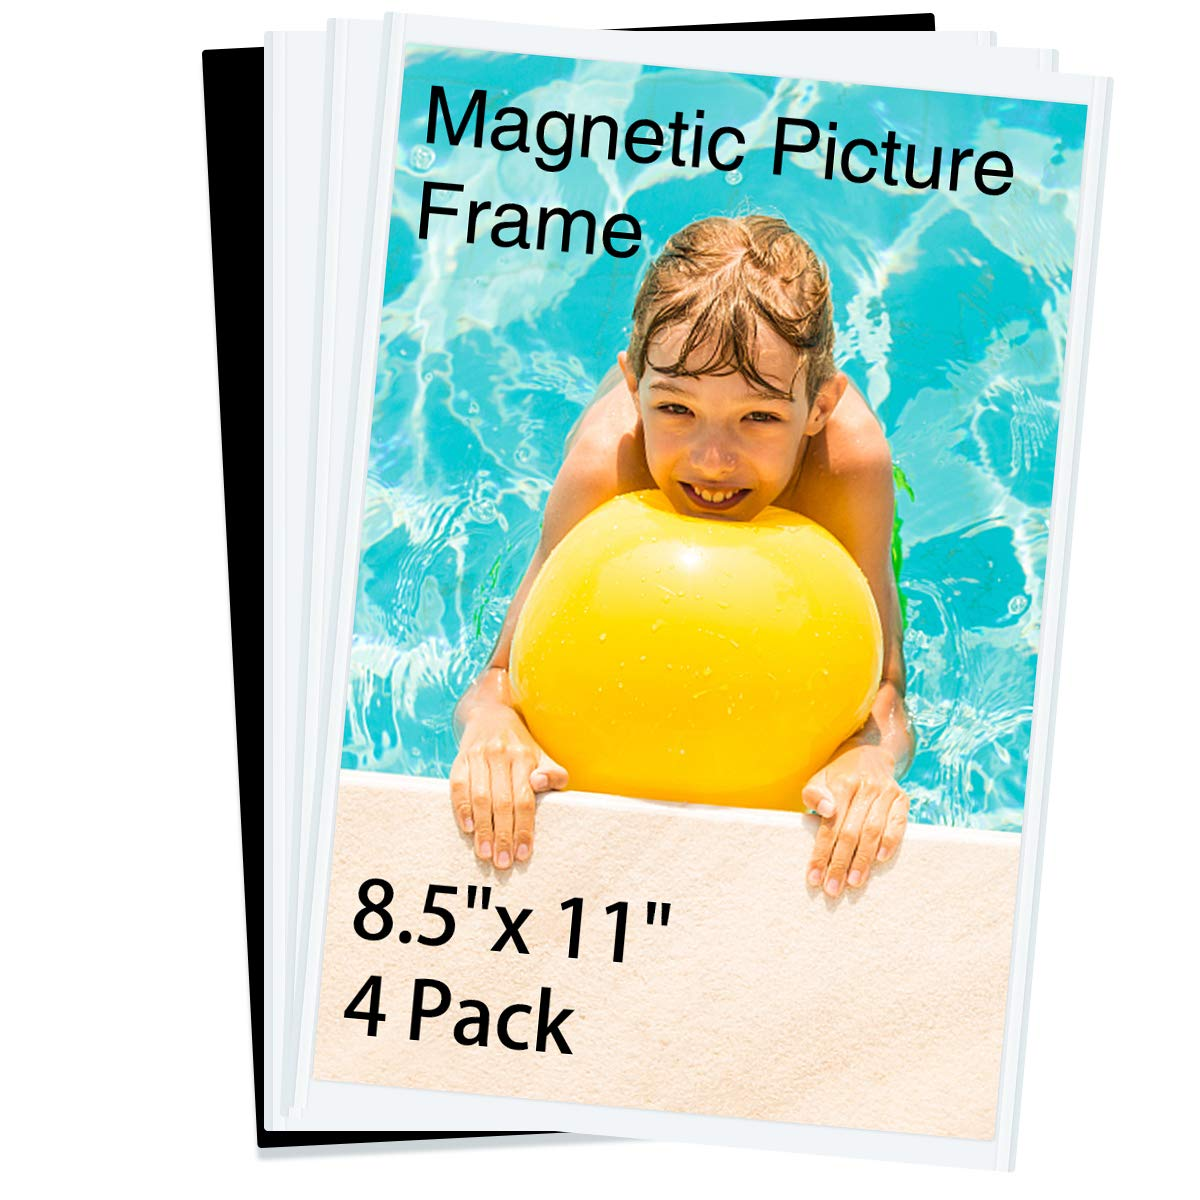 HIIMIEI Magnetic Photo Frames for Refrigerator 8.5x11, 4 Pack Fridge Magnets Picture Frame Photo Pocket,Perfect for Displaying Frames,Children Artworks and Schedules by HIIMIEI